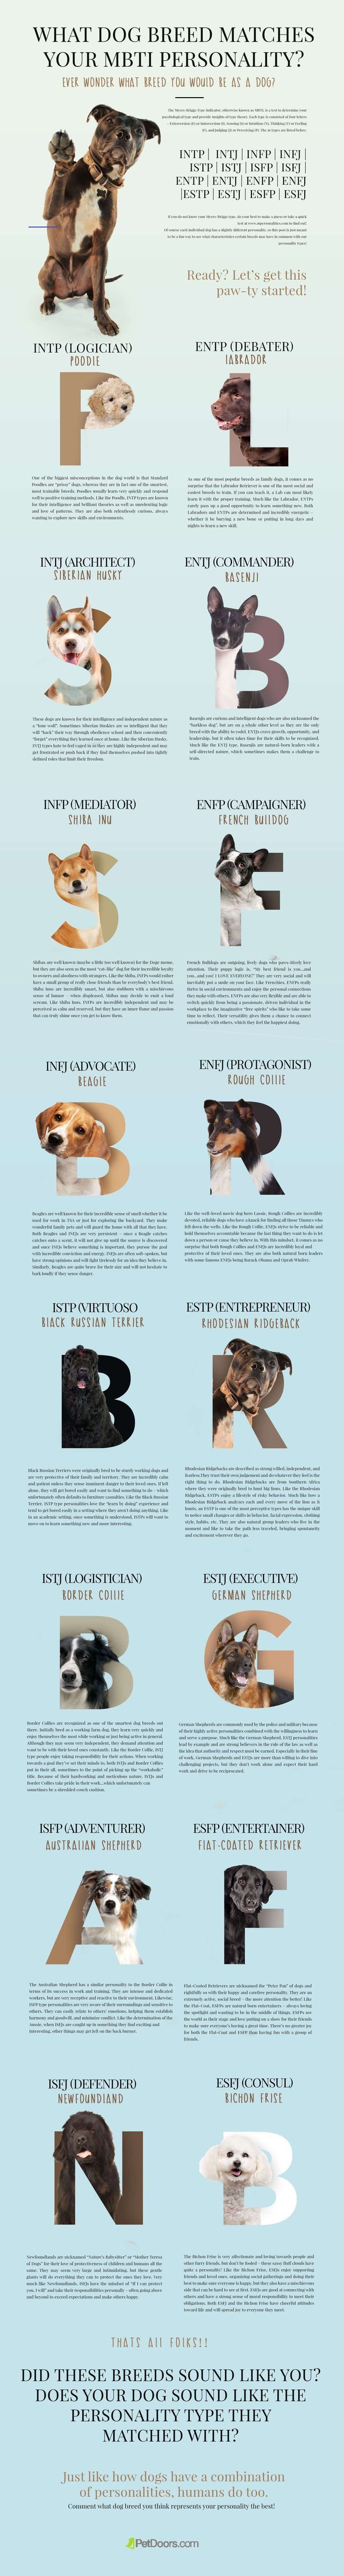 Every dog is unique just as every human is! But the fun lies in discovering the similarities that are there beyond the fur and the species, of course! So our pet-crazy team started a fun project that resulted in this Myers-Briggs Type Indicator for dogs! This infographic is just a fun way to see what characteristics certain breeds may have in common with our personality types! #infographics #pets<br> Wonder how to choose the right dog for you? Check out these dog personalities according to your